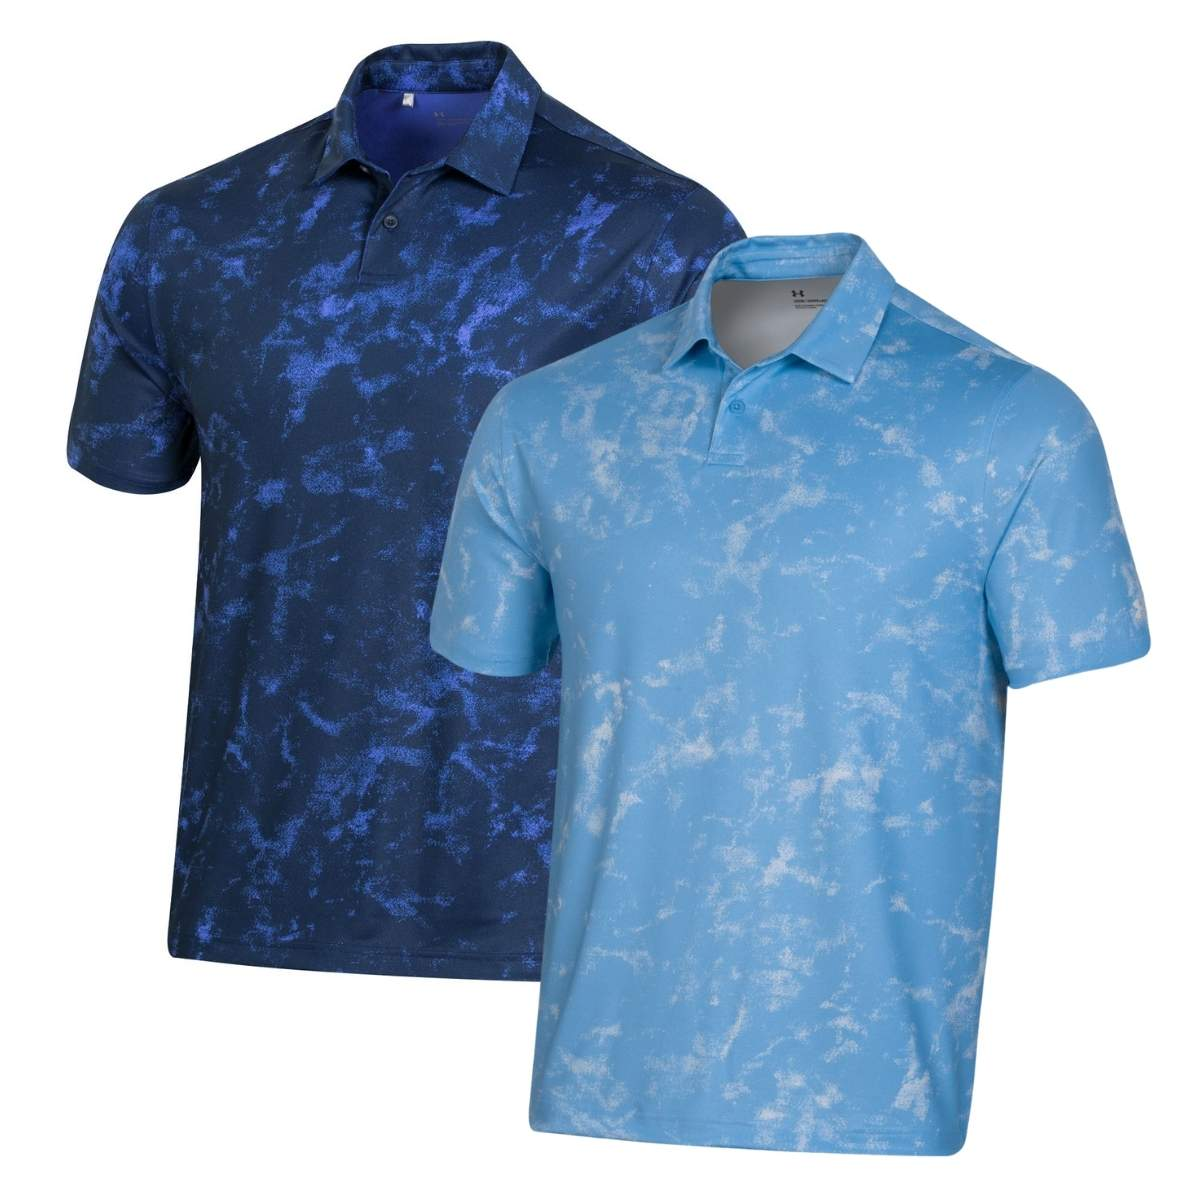 Under Armour Men's 2021 Performance Void Print Polo